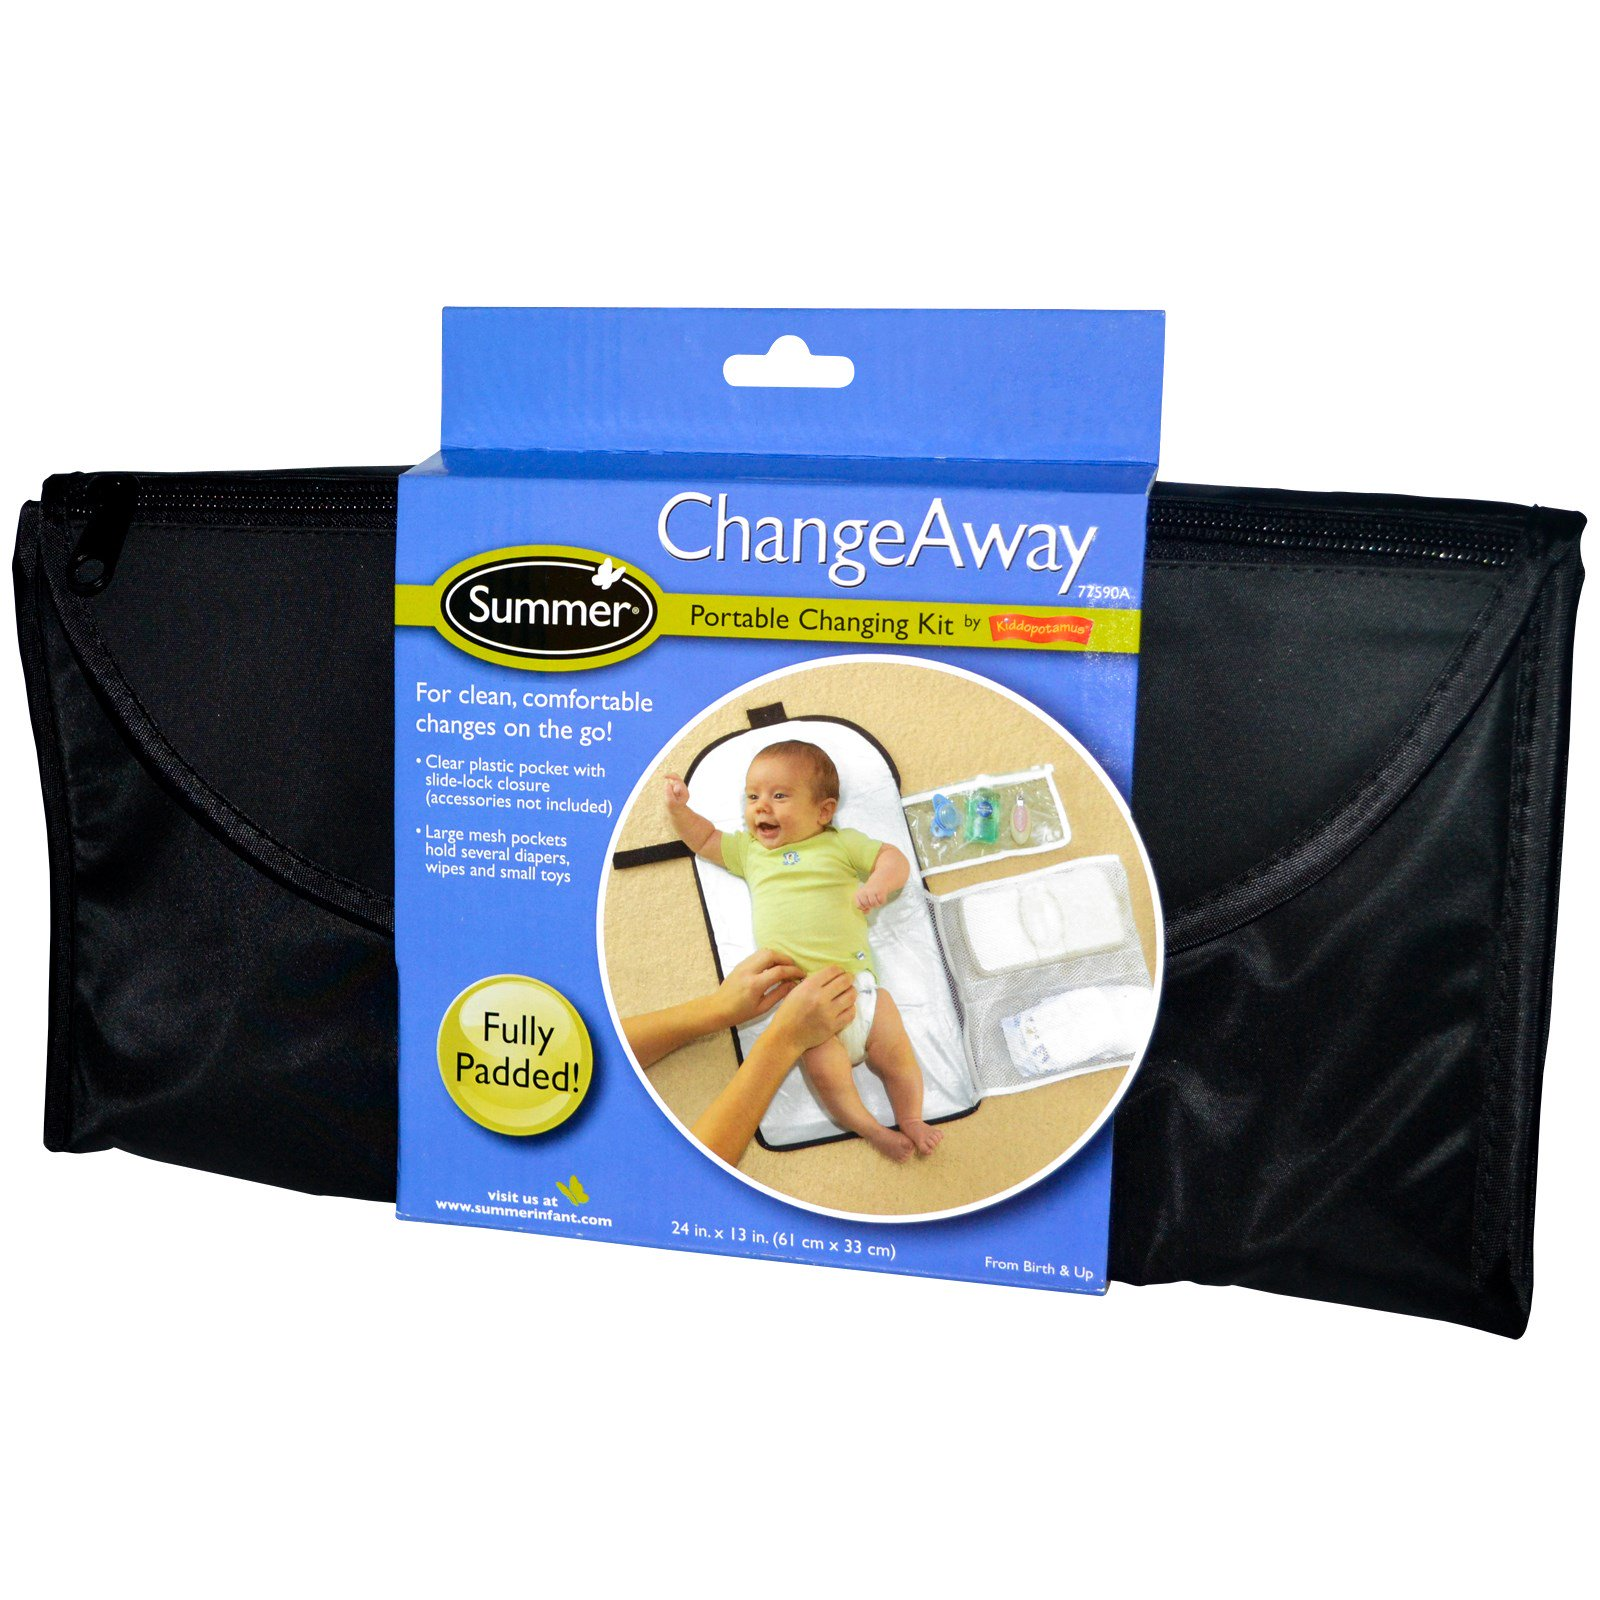 Summer Infant, ChangeAway, Portable Changing Kit, From Birth & Up, 24 in x 13 in (61 cm x 33 cm)(pack of 2)